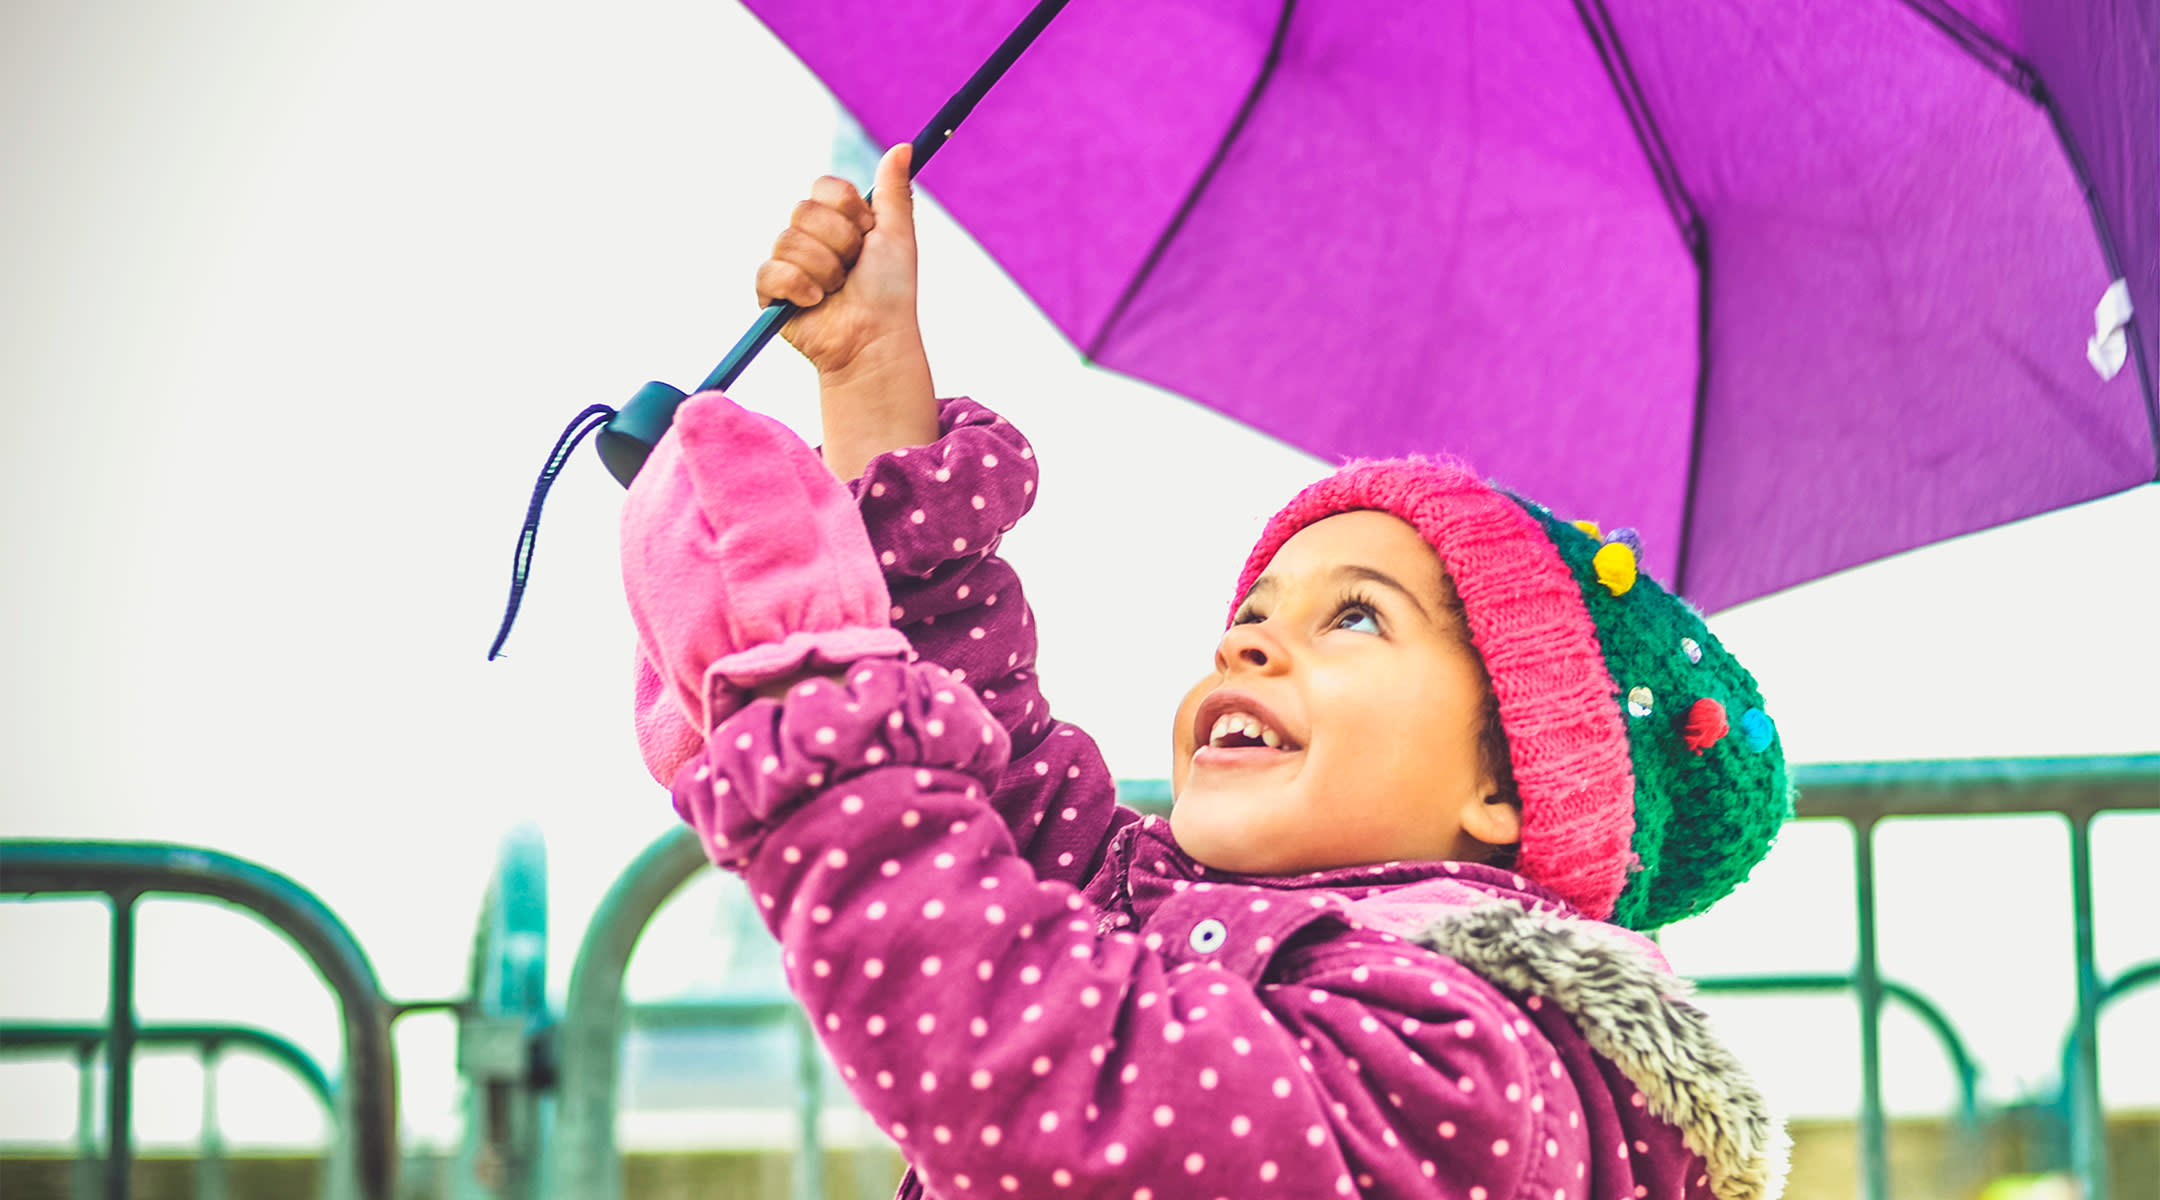 471fc98c78b2a 15 Kids' Umbrellas That Cover All the Bases